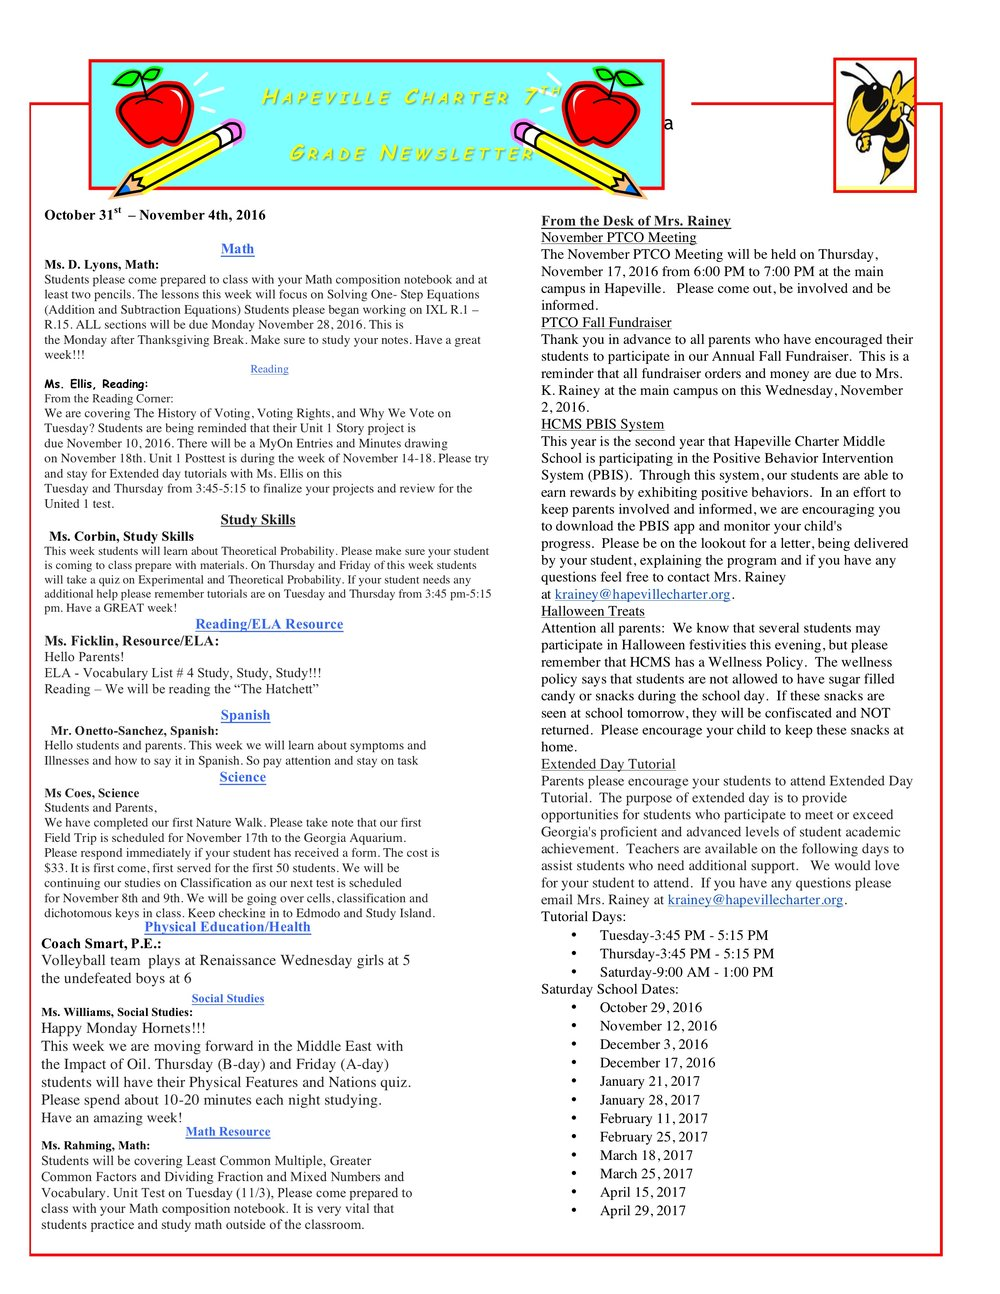 Newsletter Image7th Grade Newsletter 10-31-2016.jpeg